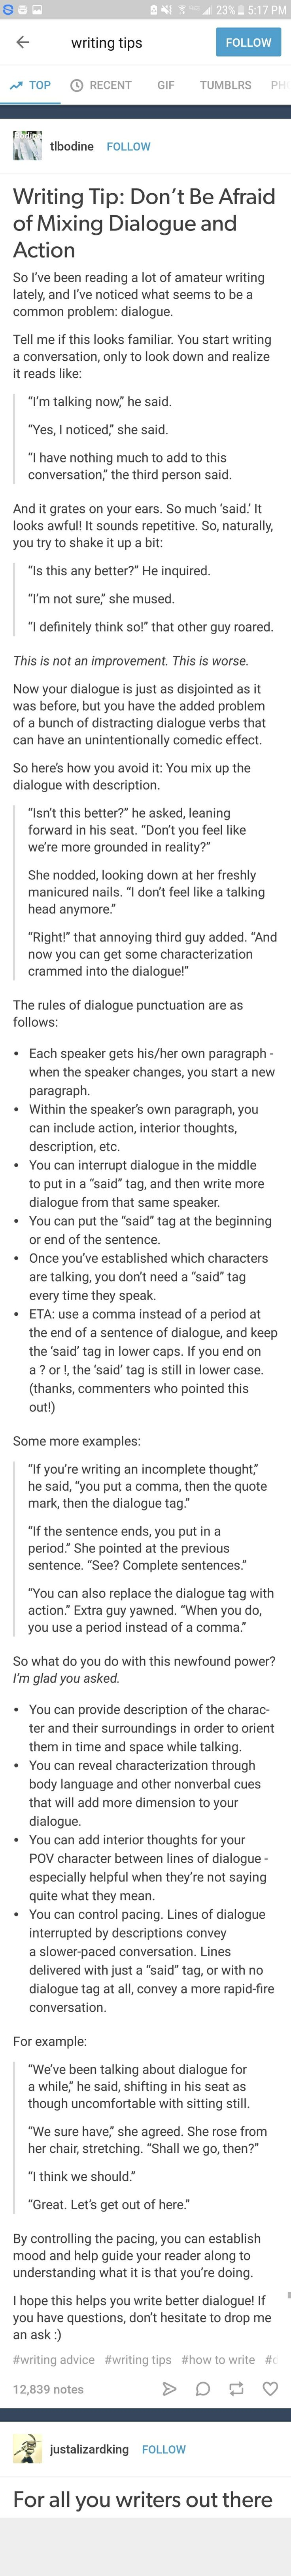 This is the best advice on writing dialogue I've seen...short & easy to understand!